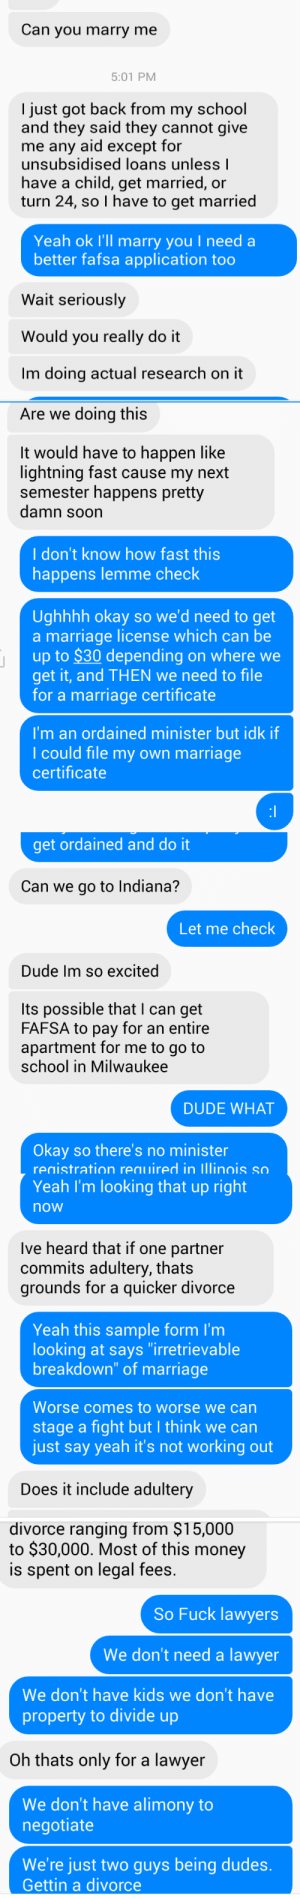 "Dude, Fafsa, and Lawyer: Can you marry me  5:01 PM  I just got back from my school  and they said they cannot give  me any aid except for  unsubsidised loans unless l  have a child, get married, or  turn 24, so I have to get married  Yeah ok I'll marry you I need a  better fafsa application too  Wait seriously  Would you really do it  Im doing actual research on it   Are we doing this  It would have to happen like  lightning fast cause my next  semester happens pretty  damn soon  I don't know how fast this  happens lemme check  Ughhhh okay so we'd need to get  a marriage license which can be  up to $30 depending on where we  get it, and THEN we need to file  for a marriage certificate  I'm an ordained minister but idk if  I could file my own marriage  certificate   get ordained and do it  Can we go to Indiana?  Let me check  Dude Im so excited  Its possible that I can get  FAFSA to pay for an entire  apartment for me to go to  school in Milwaukee  DUDE WHAT  Okay so there's no minister  registration required in lllinois so   Yeah I'm looking that up right  now  Ive heard that if one partner  commits adultery, thats  grounds for a quicker divorce  Yeah this sample form I'm  looking at says ""irretrievable  breakdown"" of marriage  Worse comes to worse we can  stage a fight but I think we can  just say yeah it's not working out  Does it include adultery   divorce ranging from $15,000  to $30,000. Most of this money  is spent on legal fees.  So Fuck lawyers  We don't need a lawyer  We don't have kids we don't have  property to divide up  Oh thats only for a lawyer  We don't have alimony to  negotiate  We're just two guys being dudes.  Gettin a divorce portraitofemmy: possiblestoner:  marzipanandminutiae:  A. imagine your otp B. dear gods this country has massive issues  I've been looking for this post for ages  listen, I've read enough fanfic to know that they're not getting divorced, but it'll take about 35k of pining to figure that out."